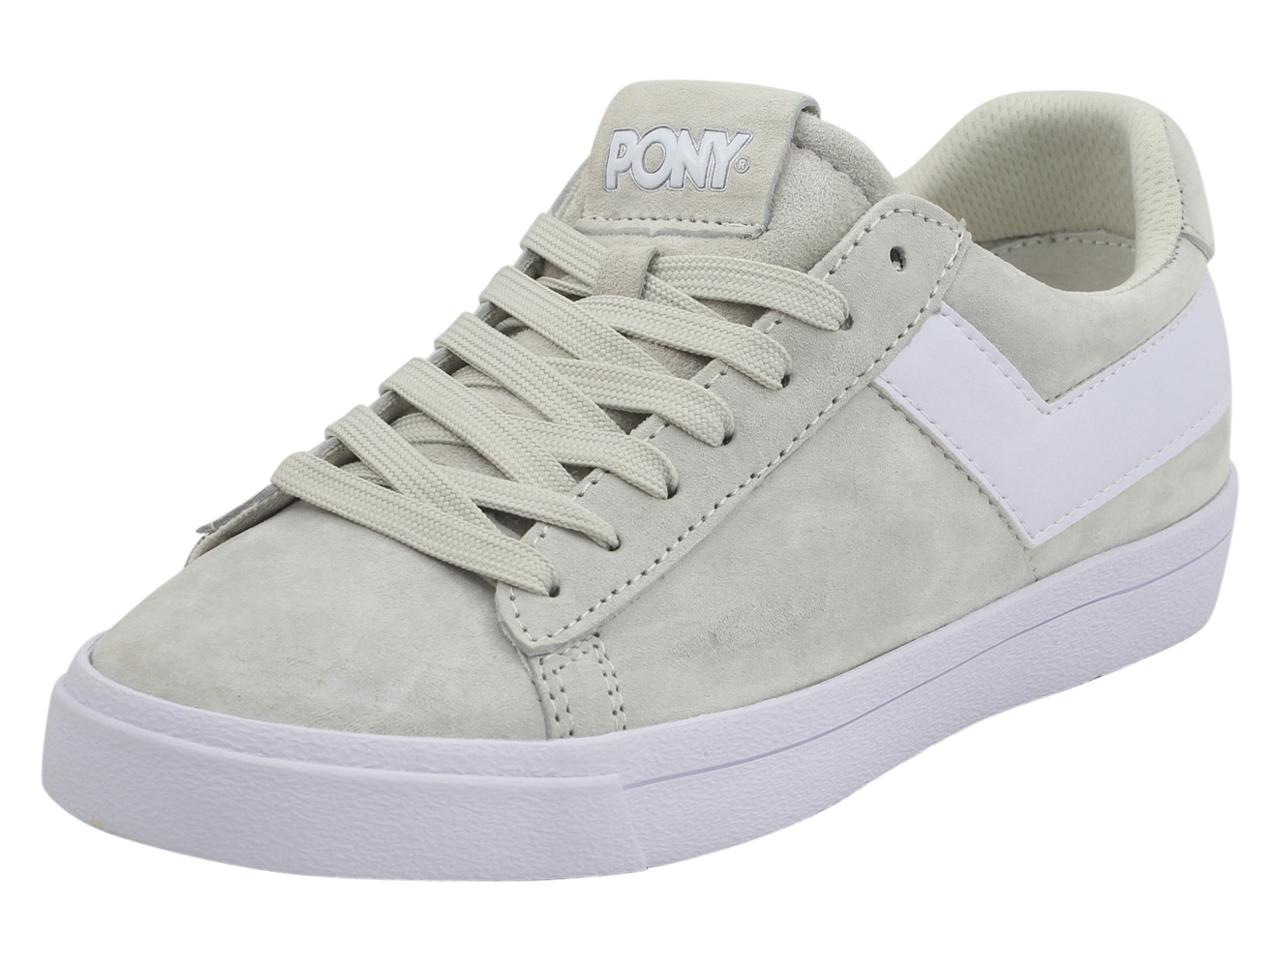 Image of Pony Women's Top Star Lo Core Suede Sneakers Shoes - Beige - 6.5 B(M) US